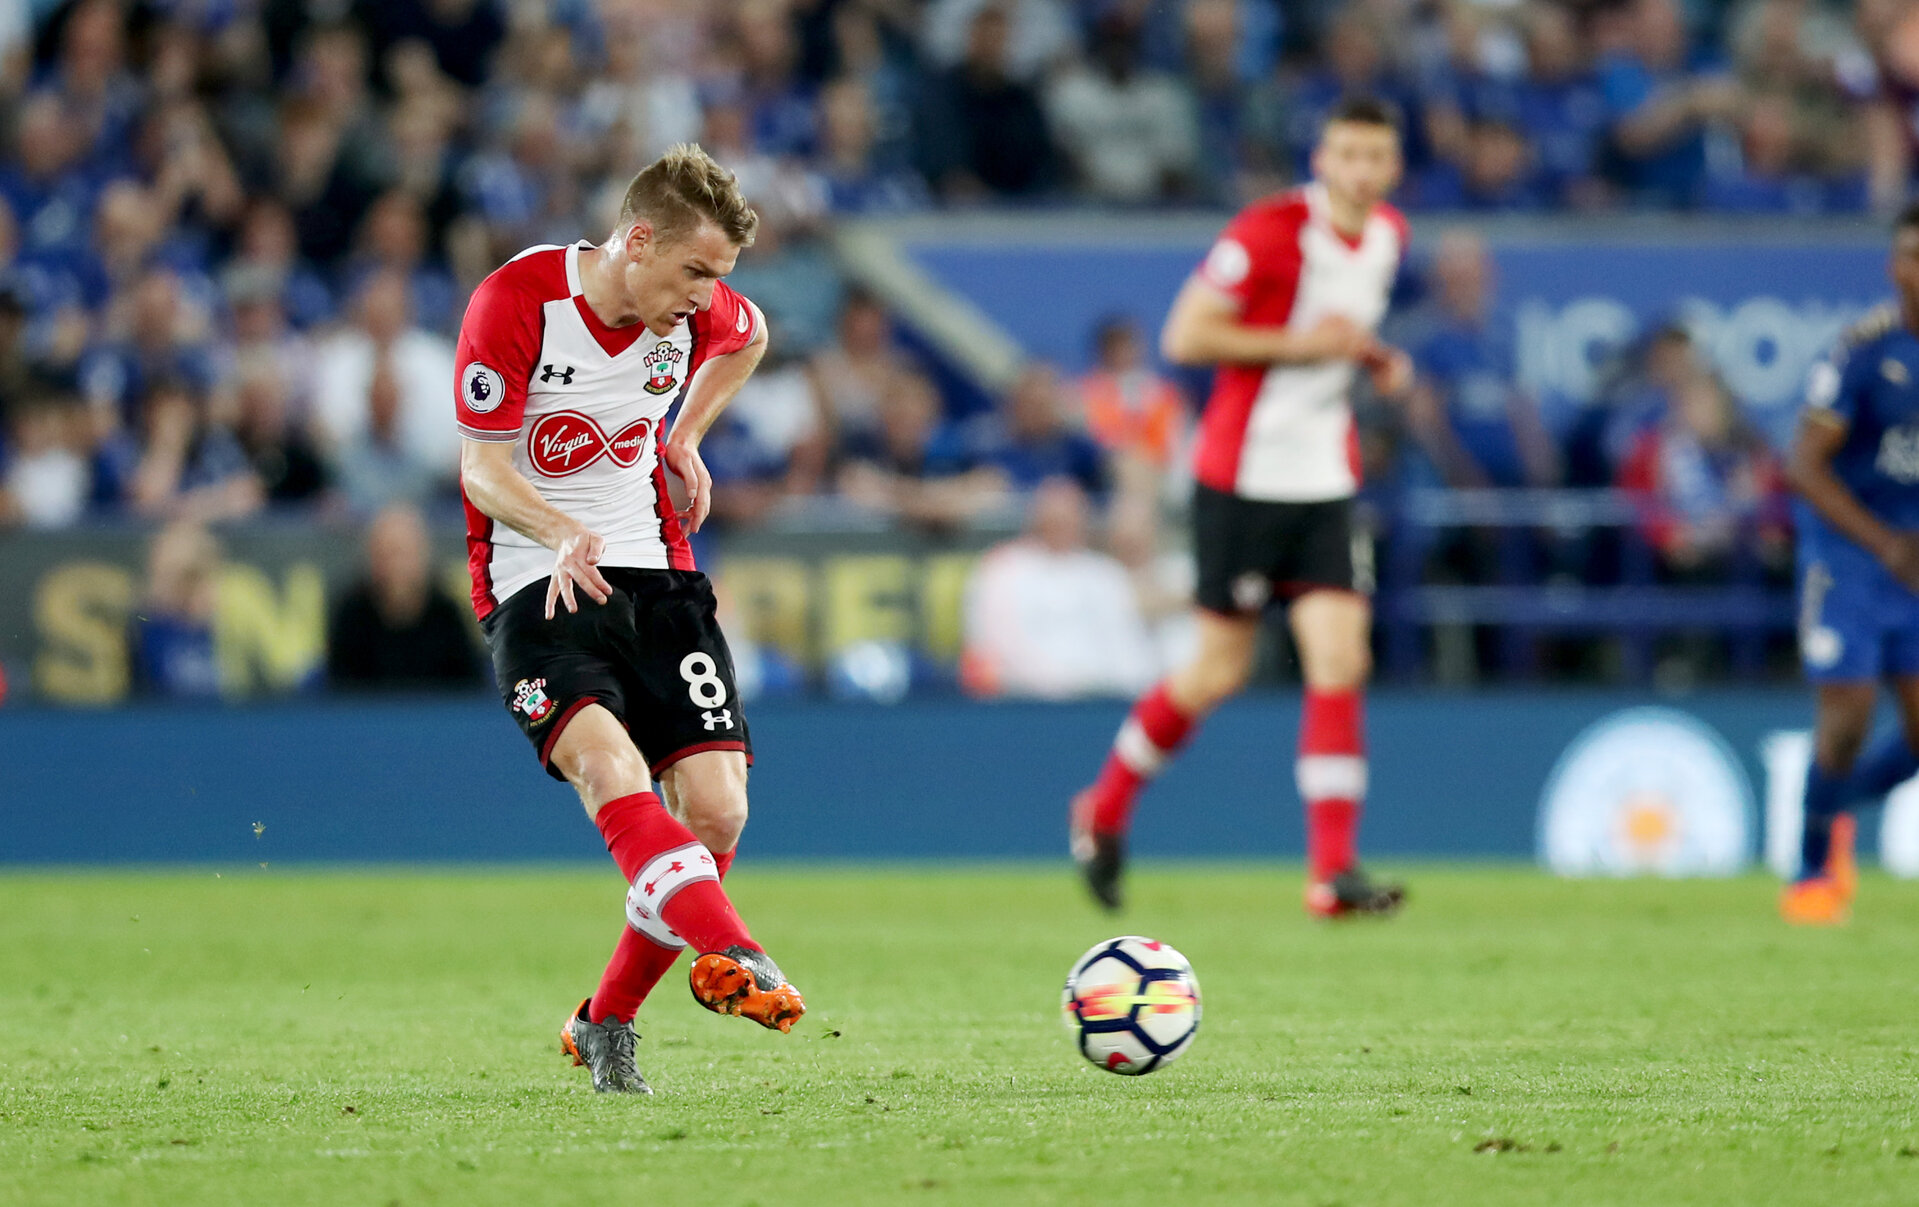 LEICESTER, ENGLAND - APRIL 19: Steven Davis of Southampton during the Premier League match between Leicester City and Southampton at The King Power Stadium on April 19, 2018 in Leicester, England. (Photo by Matt Watson/Southampton FC via Getty Images)